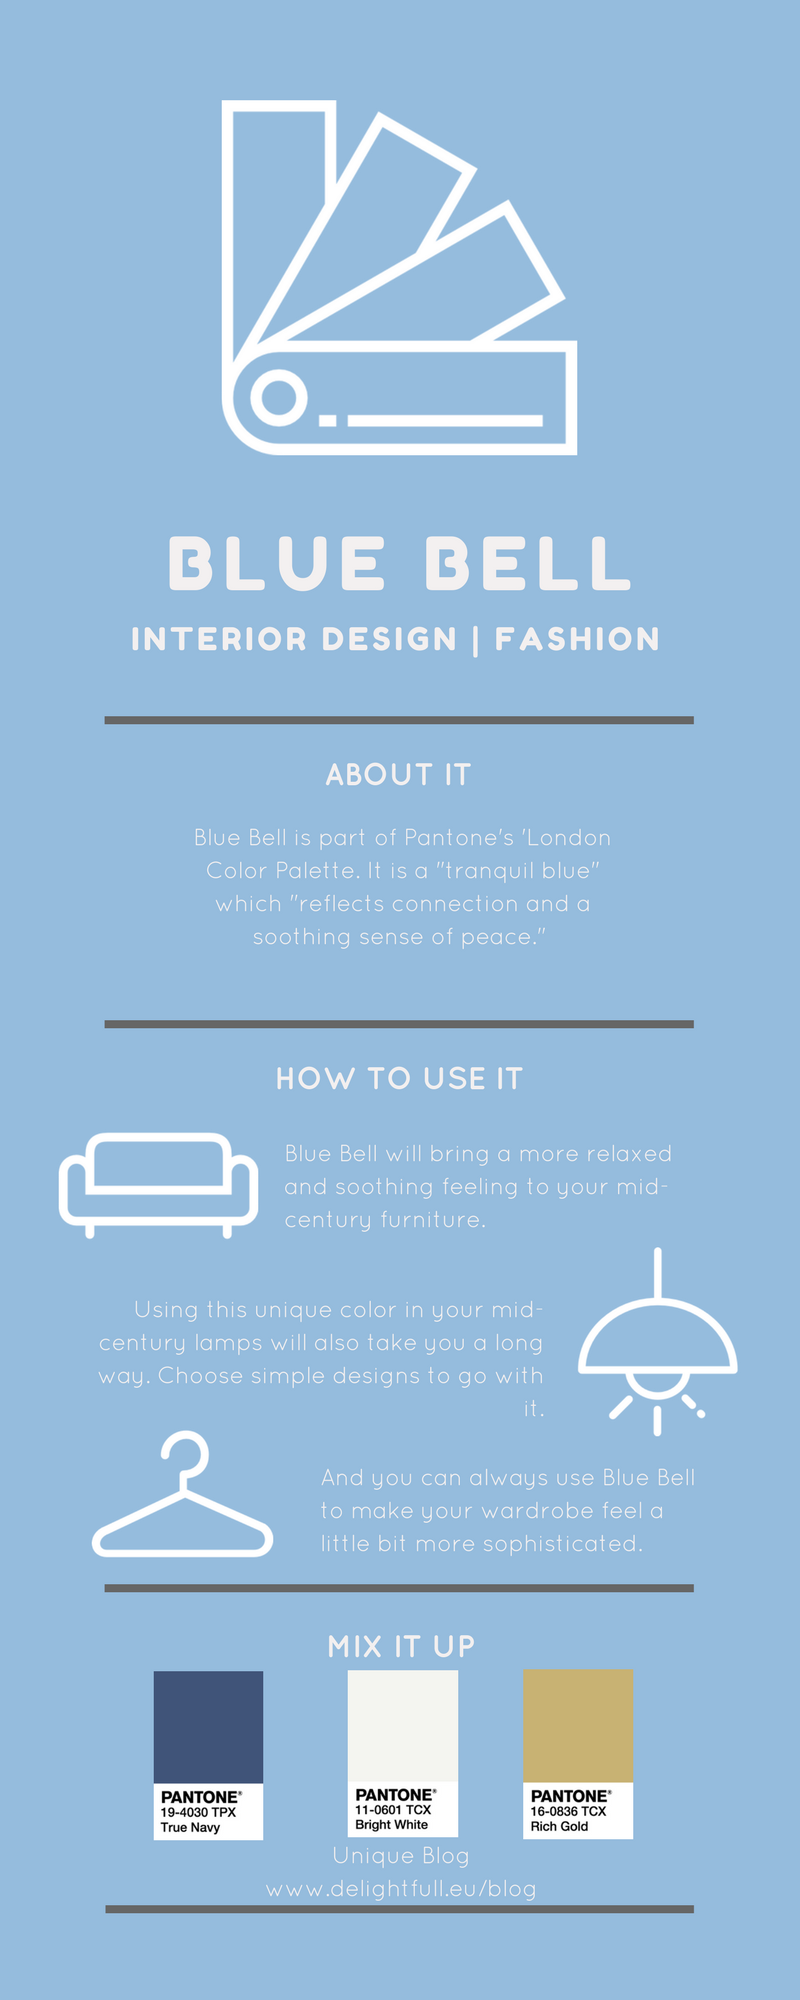 Pantone Fall Fashion Report- How to Highlight Blue Bell in the Fall pantone fall fashion Pantone Fall Fashion Report: How to Highlight Blue Bell in the Fall Pantone Fall Fashion Report How to Highlight Blue Bell in the Fall info